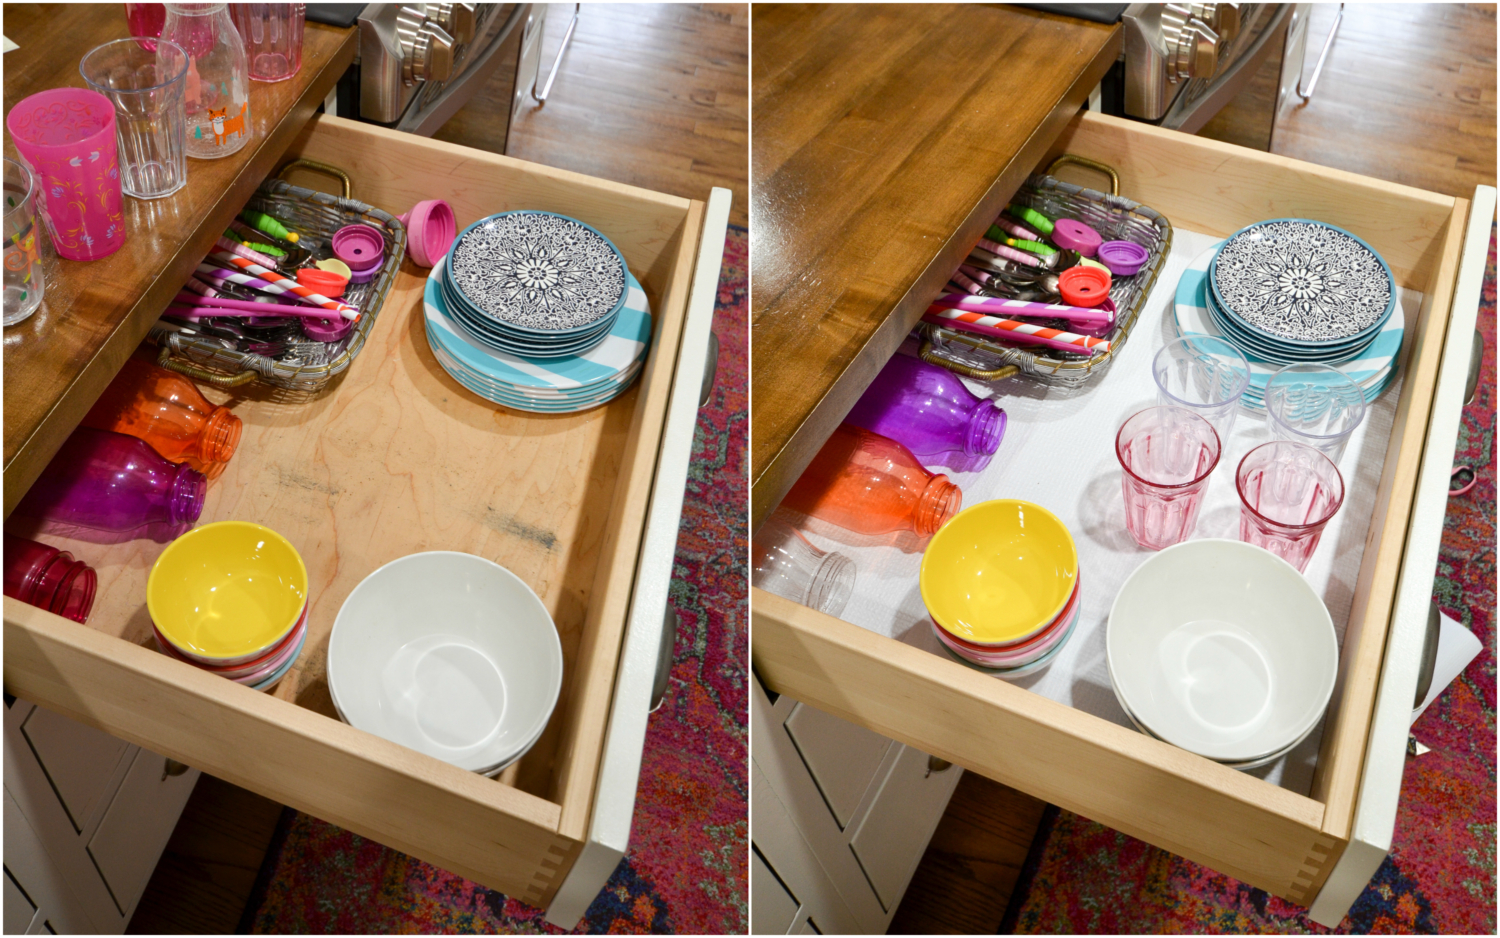 Spring cleaning kitchen cabinets - It S Non Adhesive So If The Liner Starts To Look Worn In Another Year I Can Simply Take It Out And Replace It The Smooth Top Lets Items Slide Across Easily